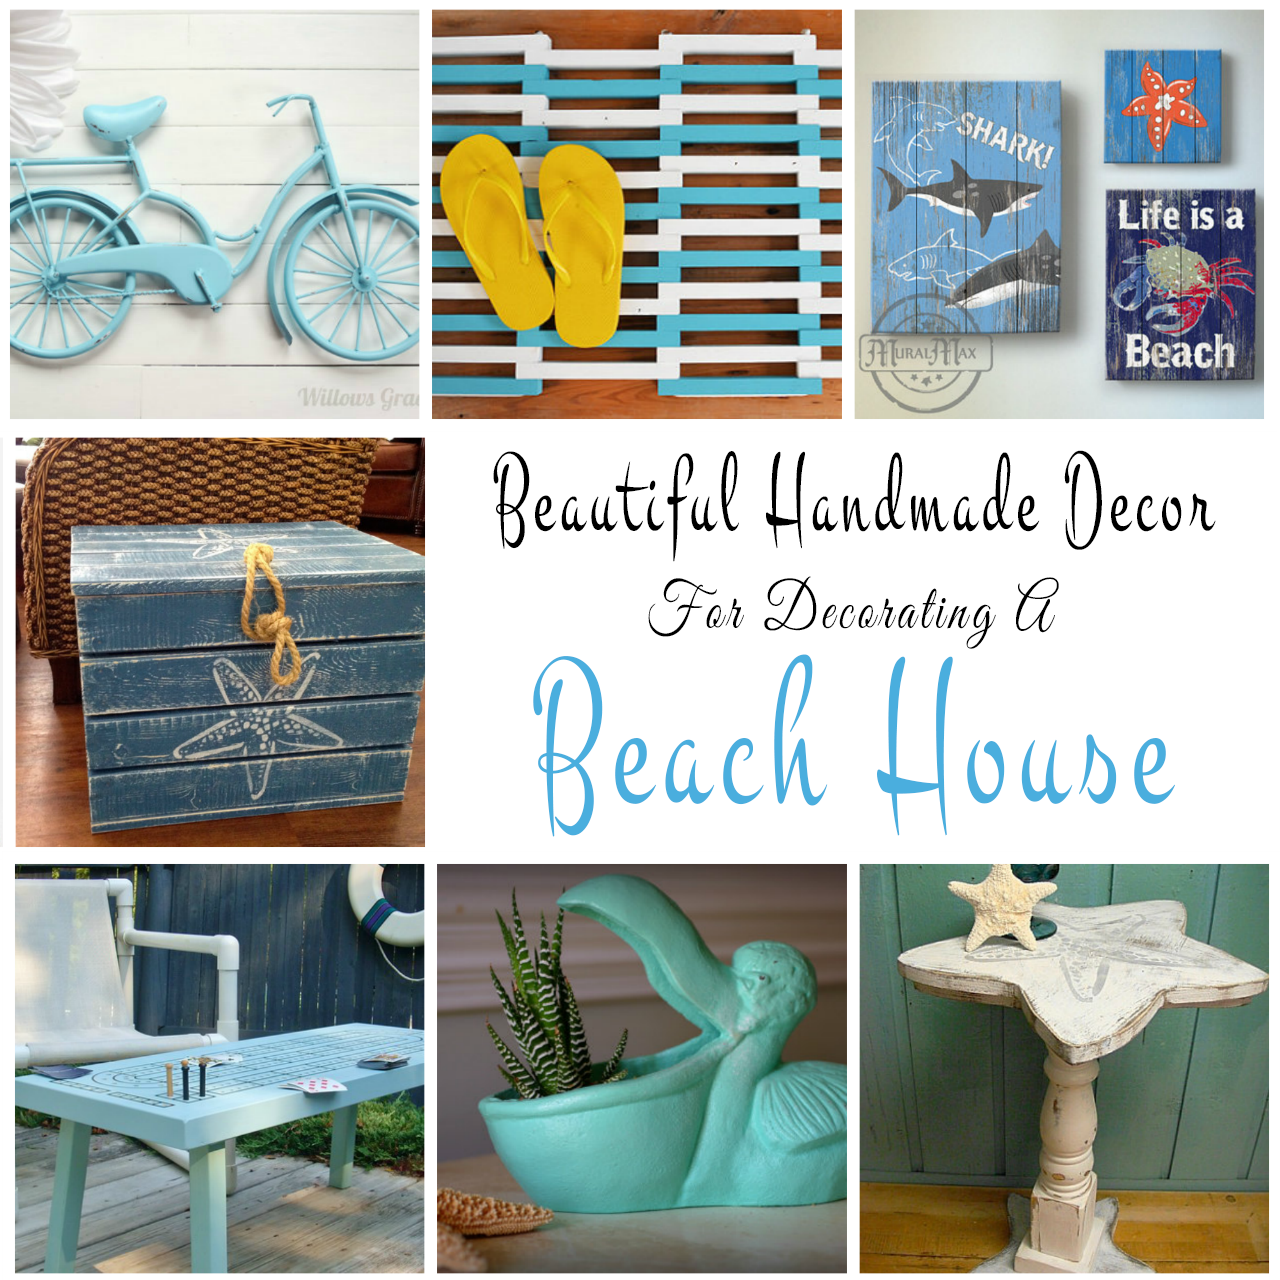 Handmade decor ideas for decorating a beach house for House and home decorating ideas